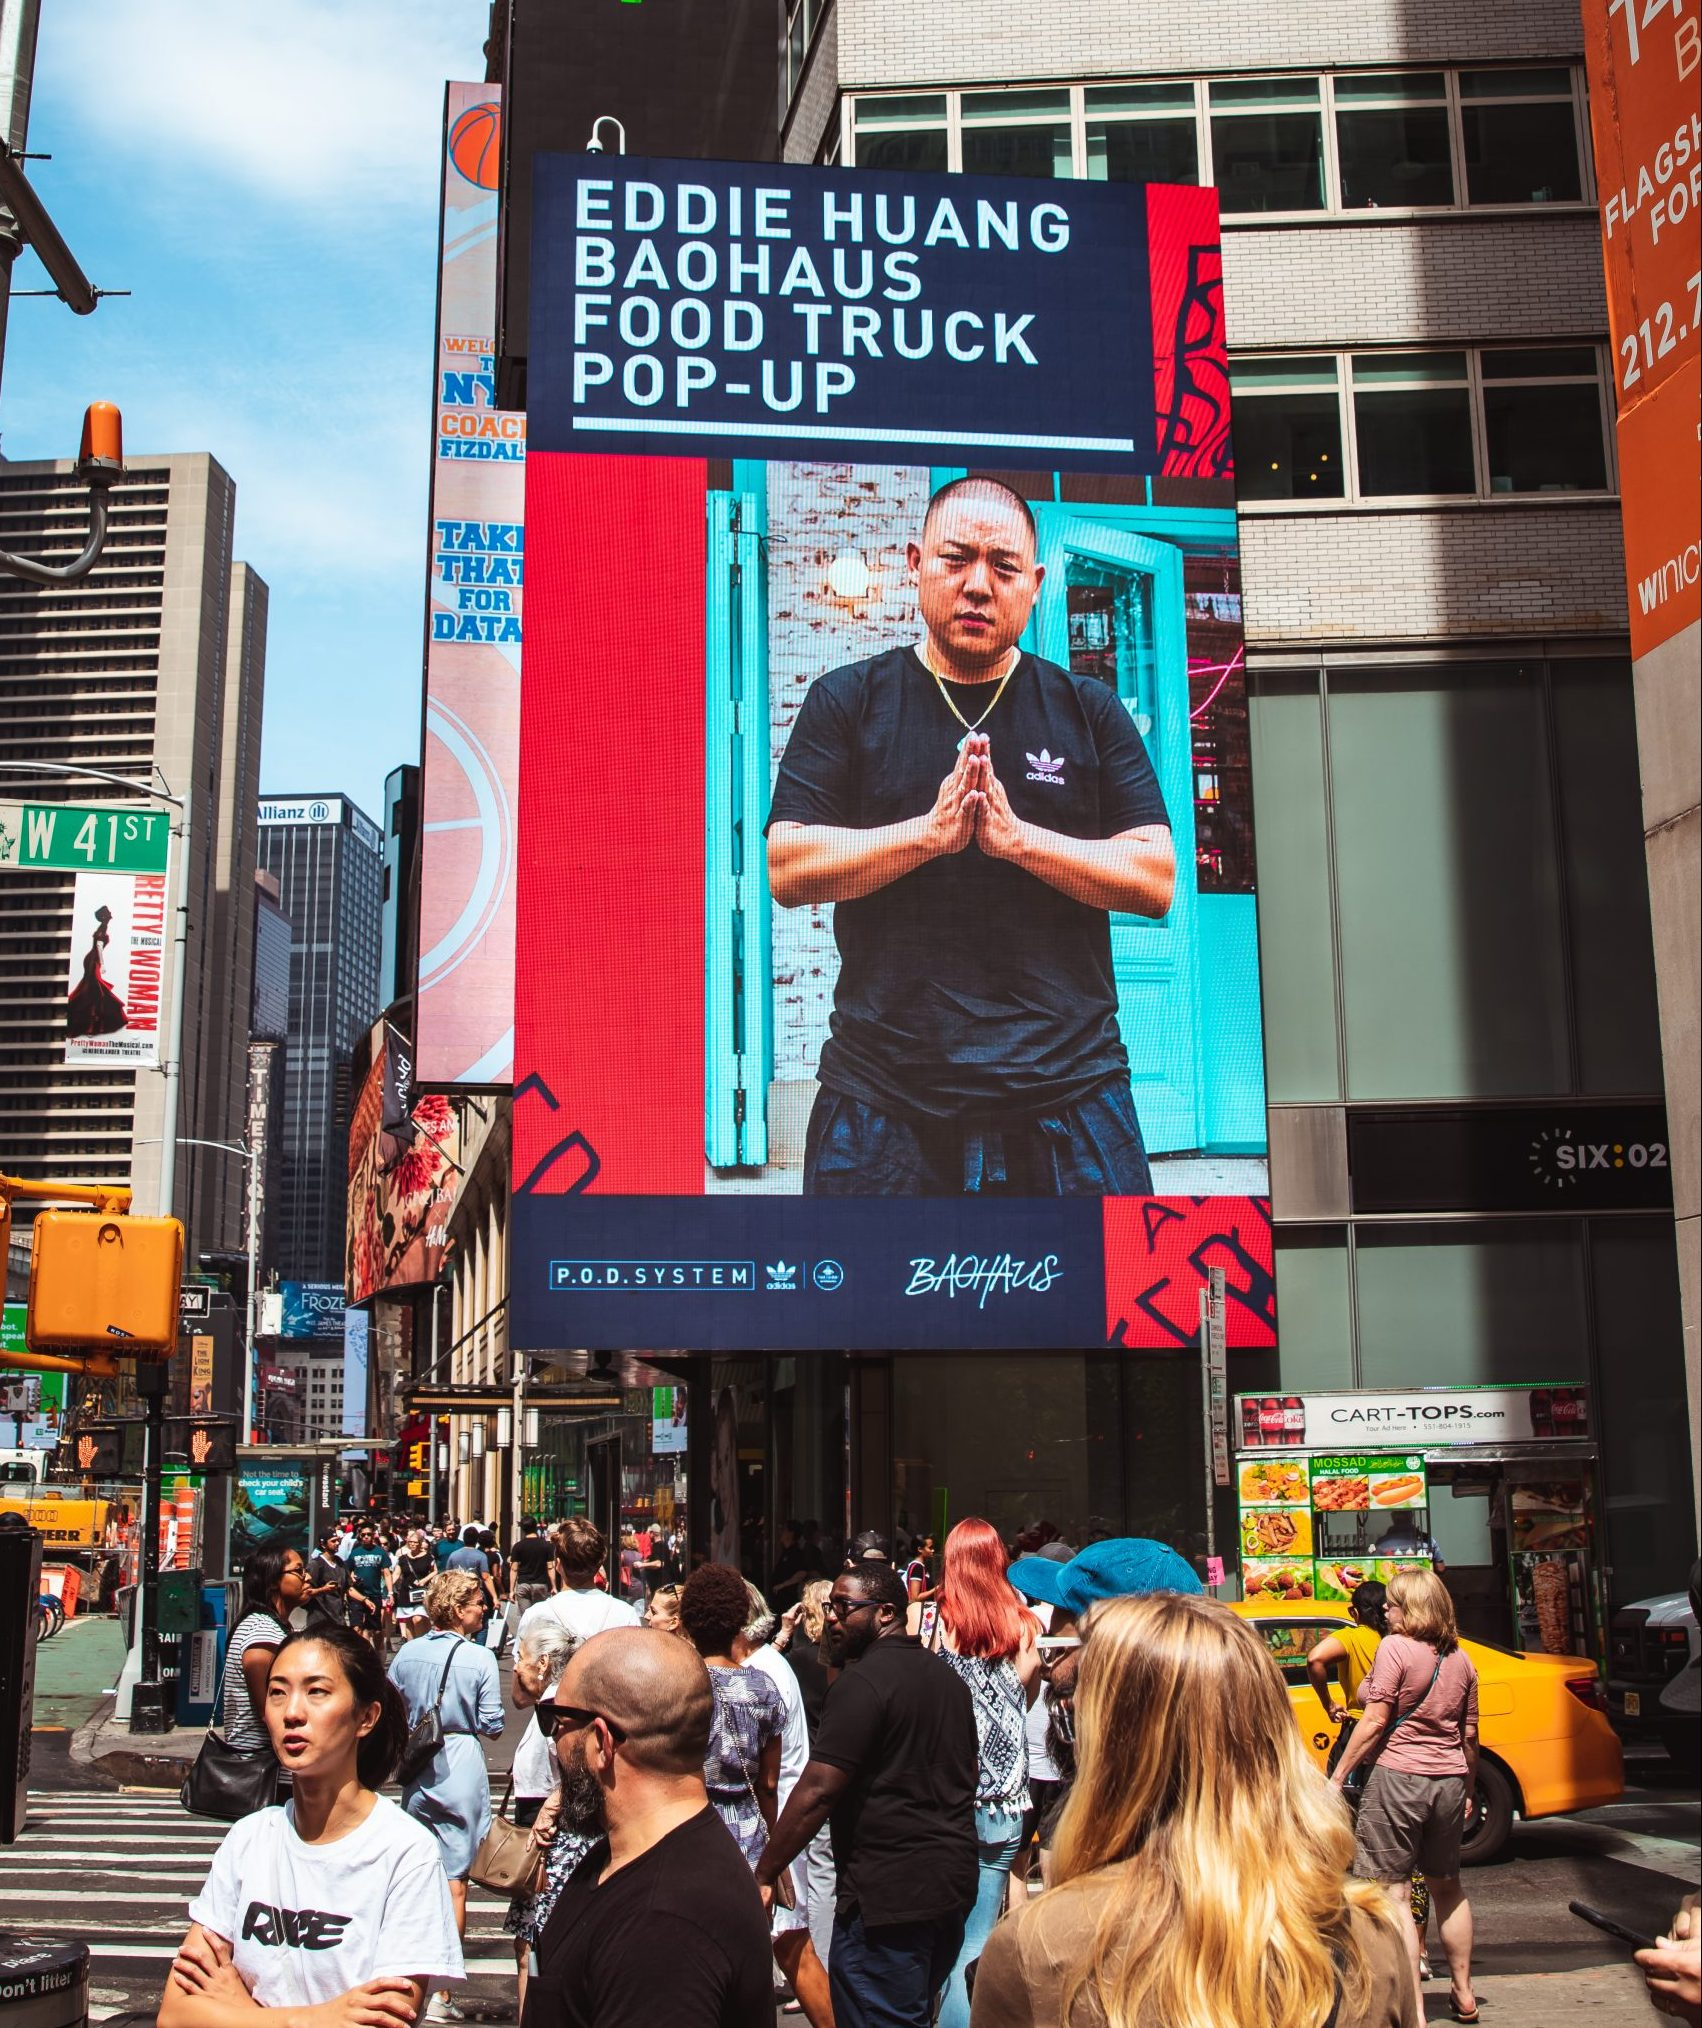 Adidas Eddie Haung Food Truck Pop-Up